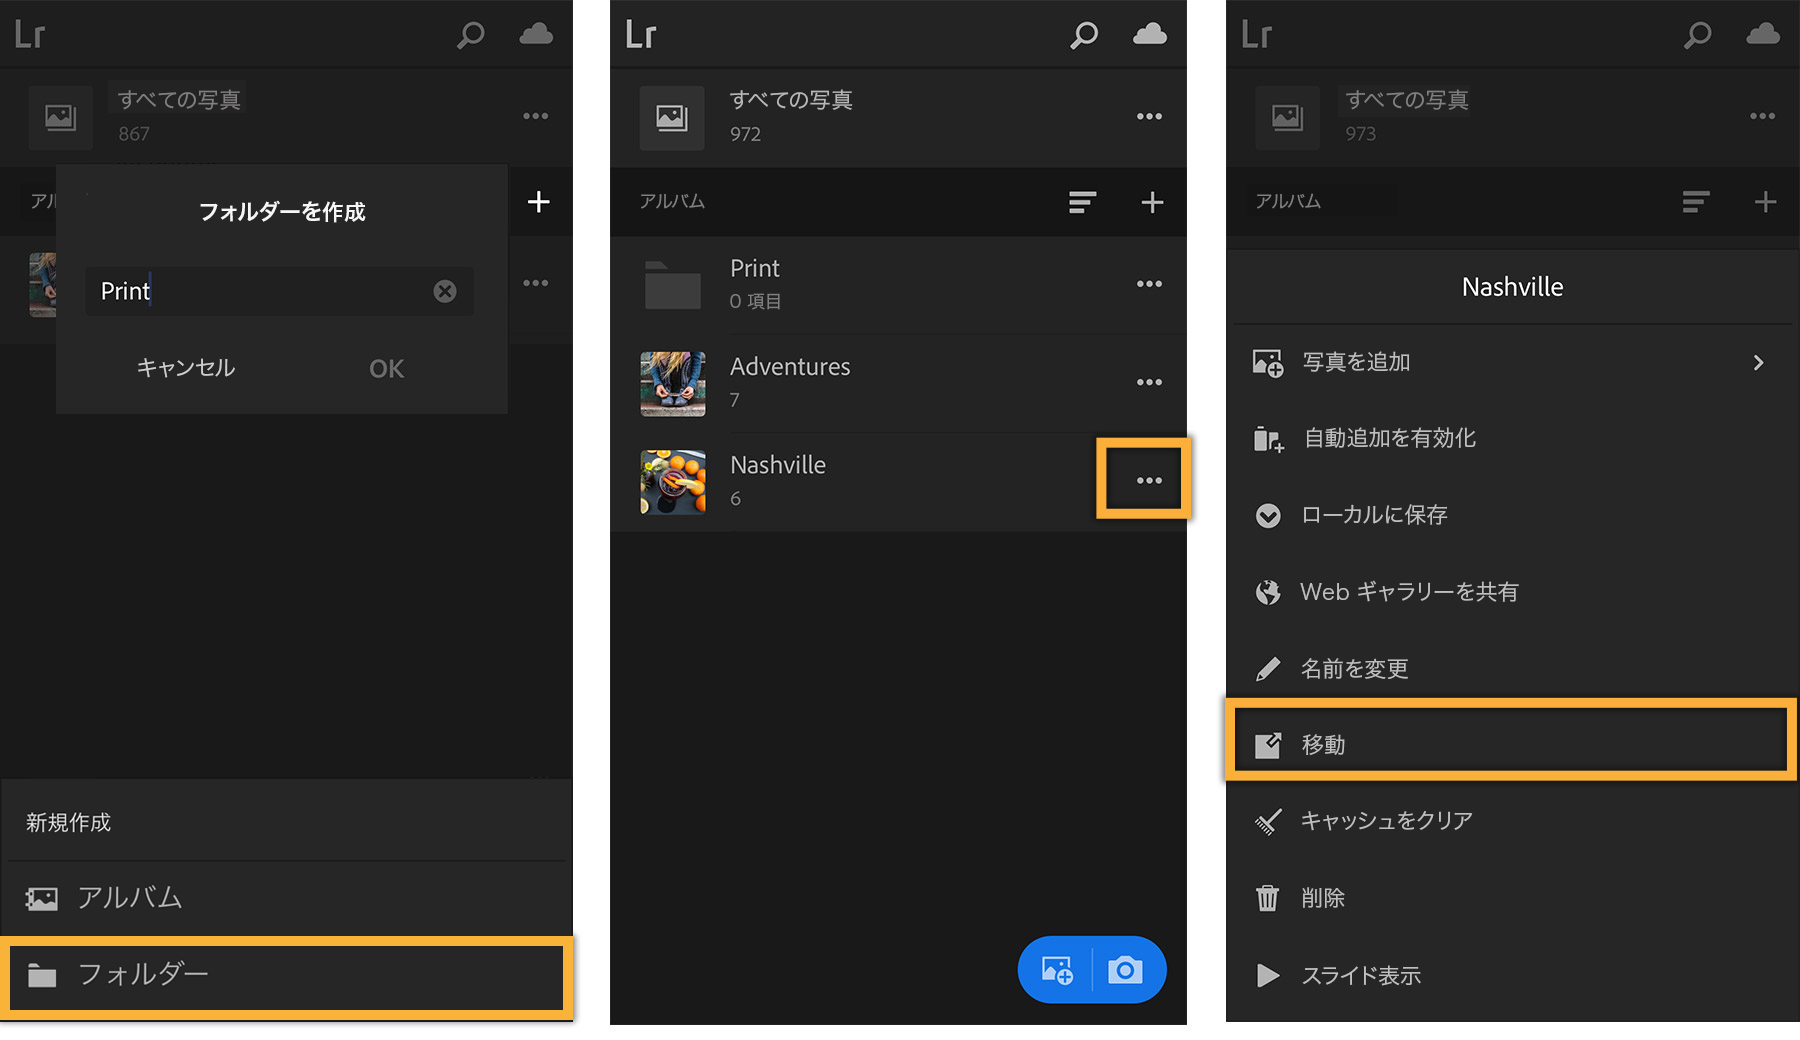 lightroom-mobile-manage-albums_fig6